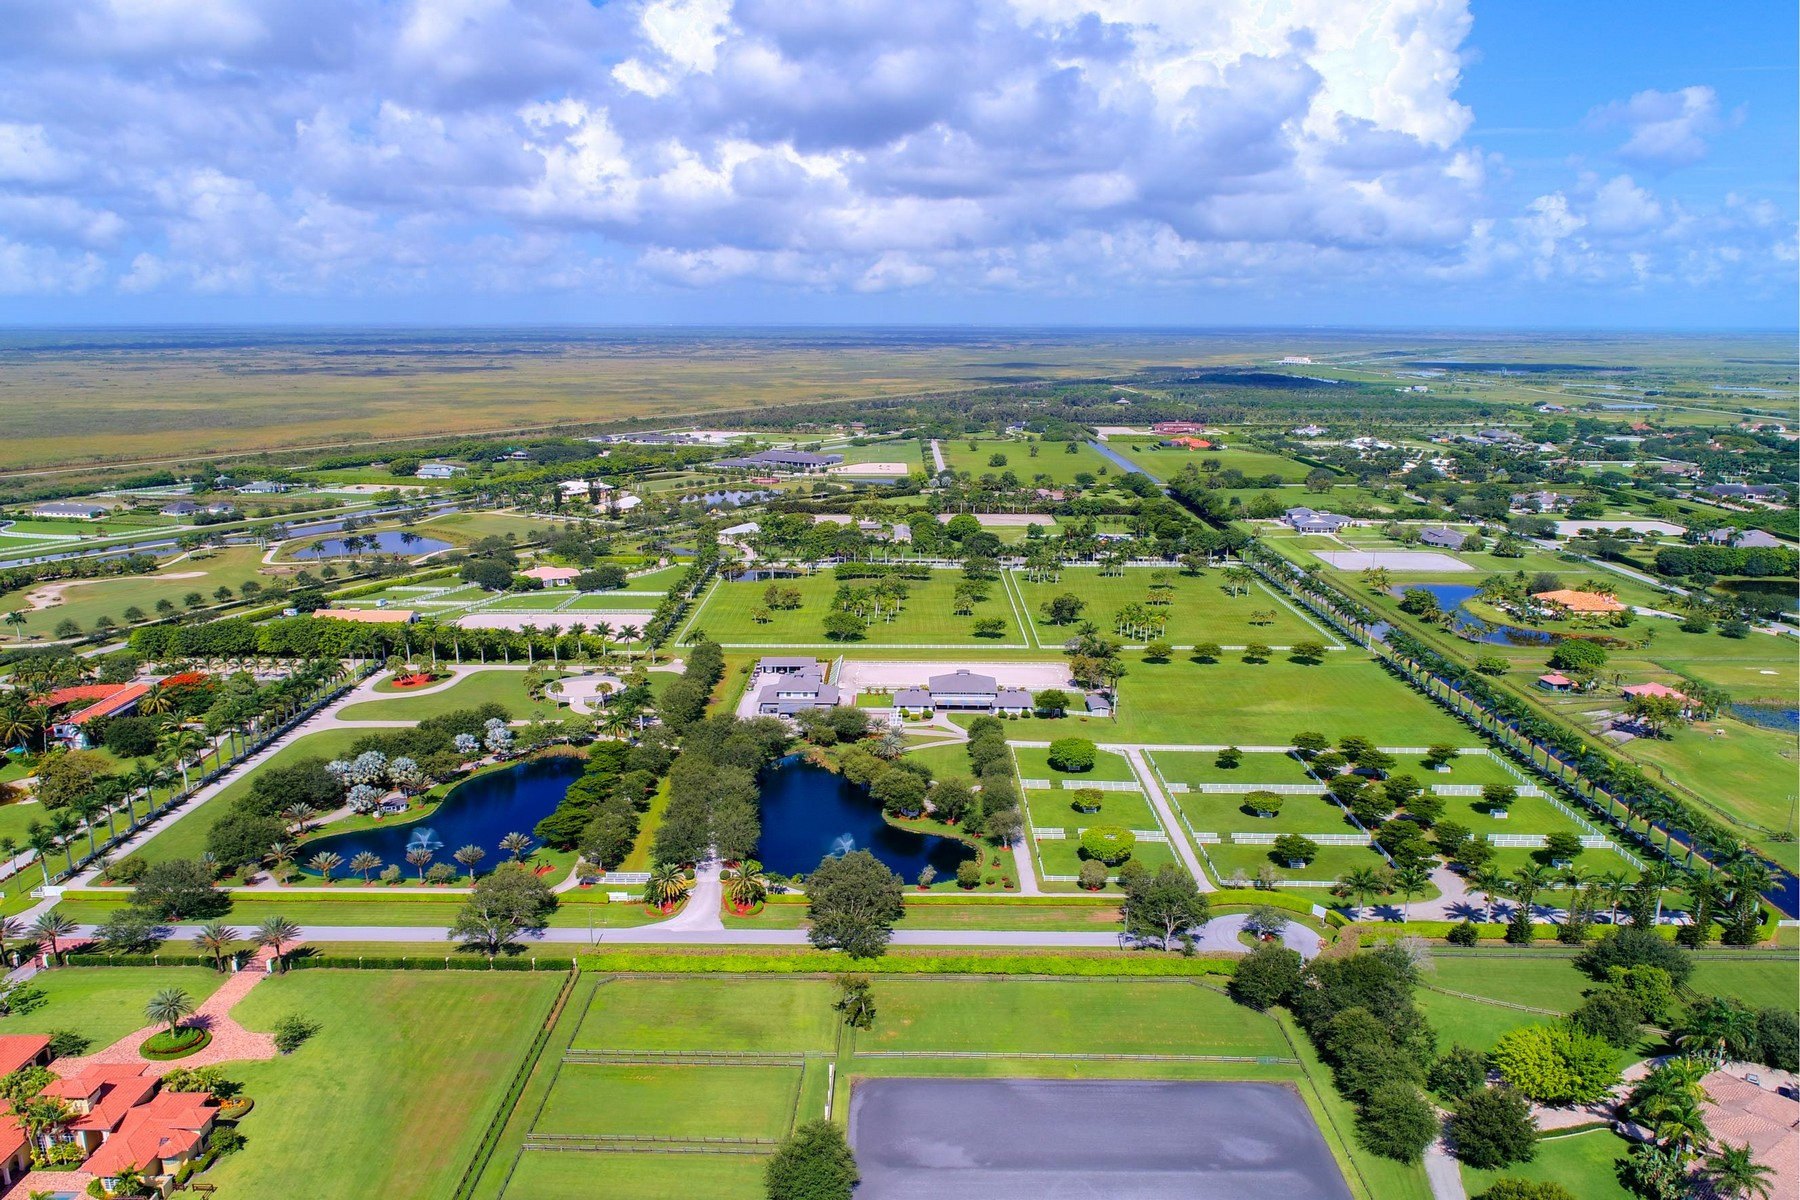 Single Family Home for Sale at Owls Roost Farms 4481 Garden Point Trail Wellington, Florida 33414 United States